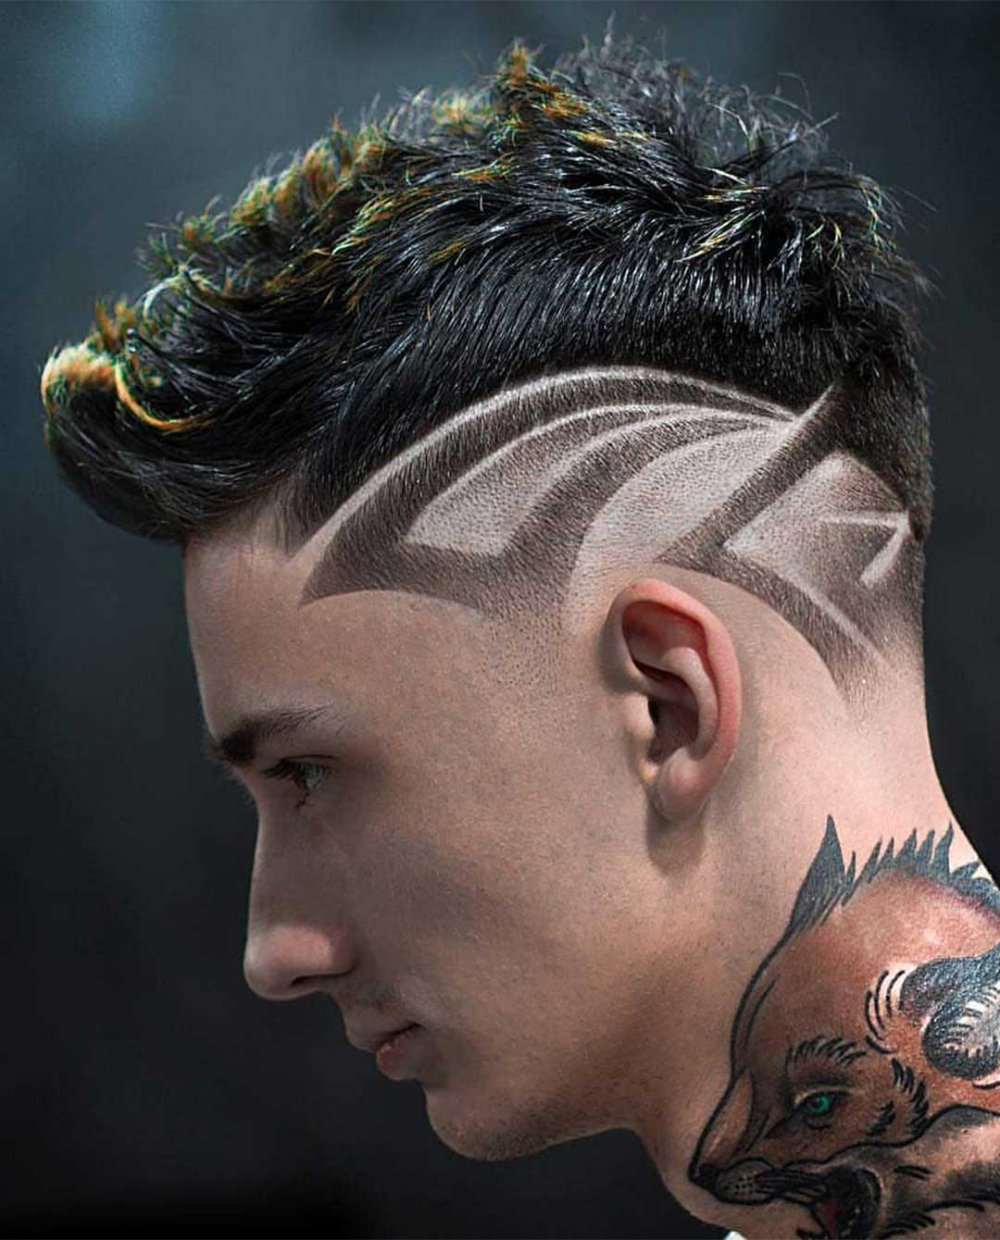 42 Cool Hair Designs For Men In 2021 Men S Hairstyle Tips Cool Hair Designs Men Hair Color Hair Designs For Men